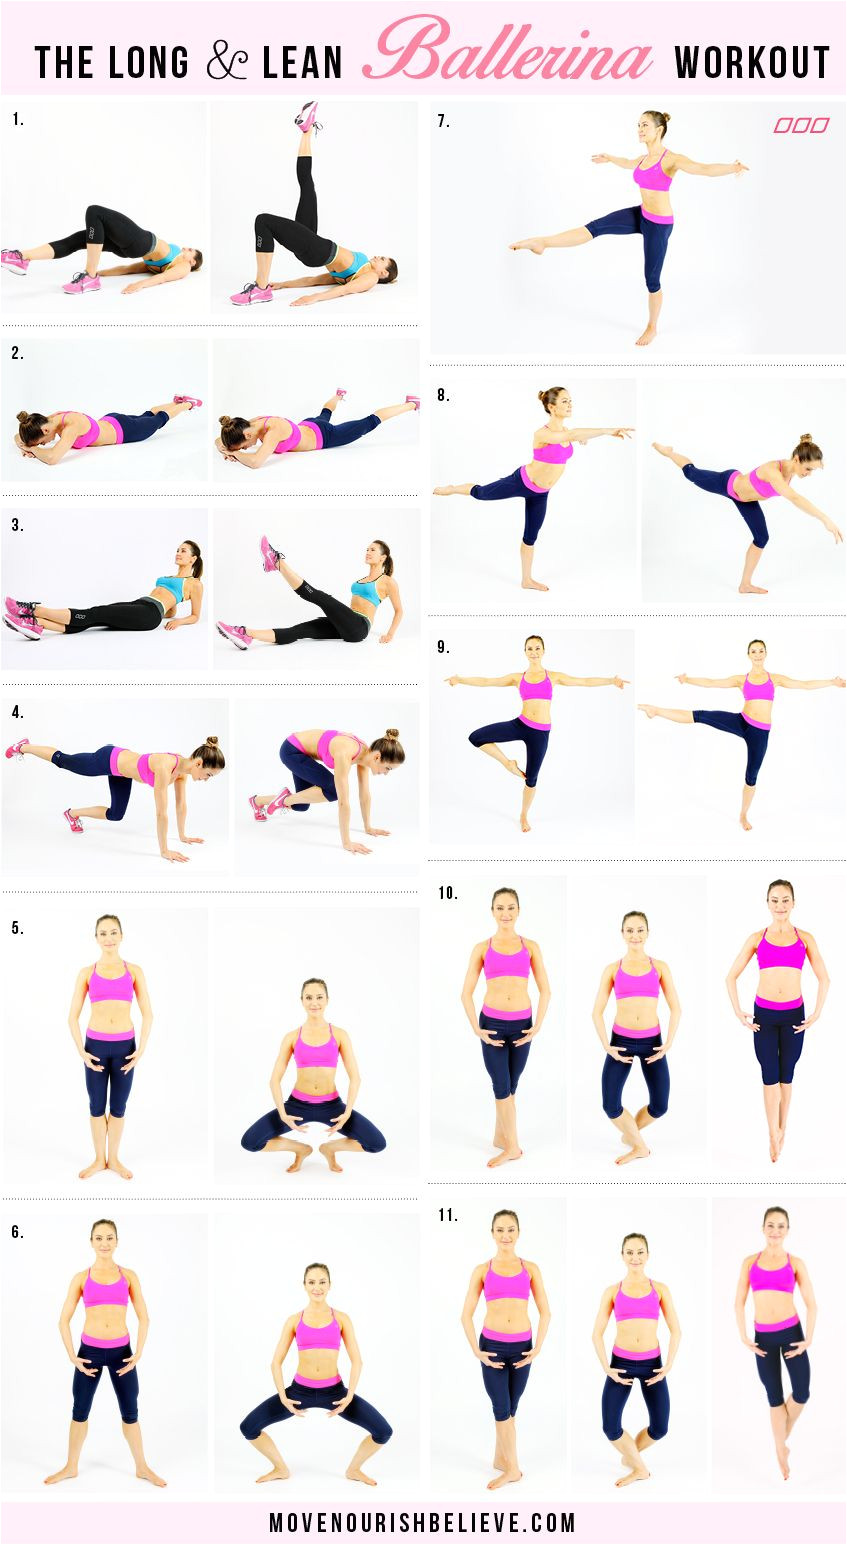 say hello to lean legs toned arms elegant curves and a strong core try this ballerina workout by top fitness trainer christine bullock